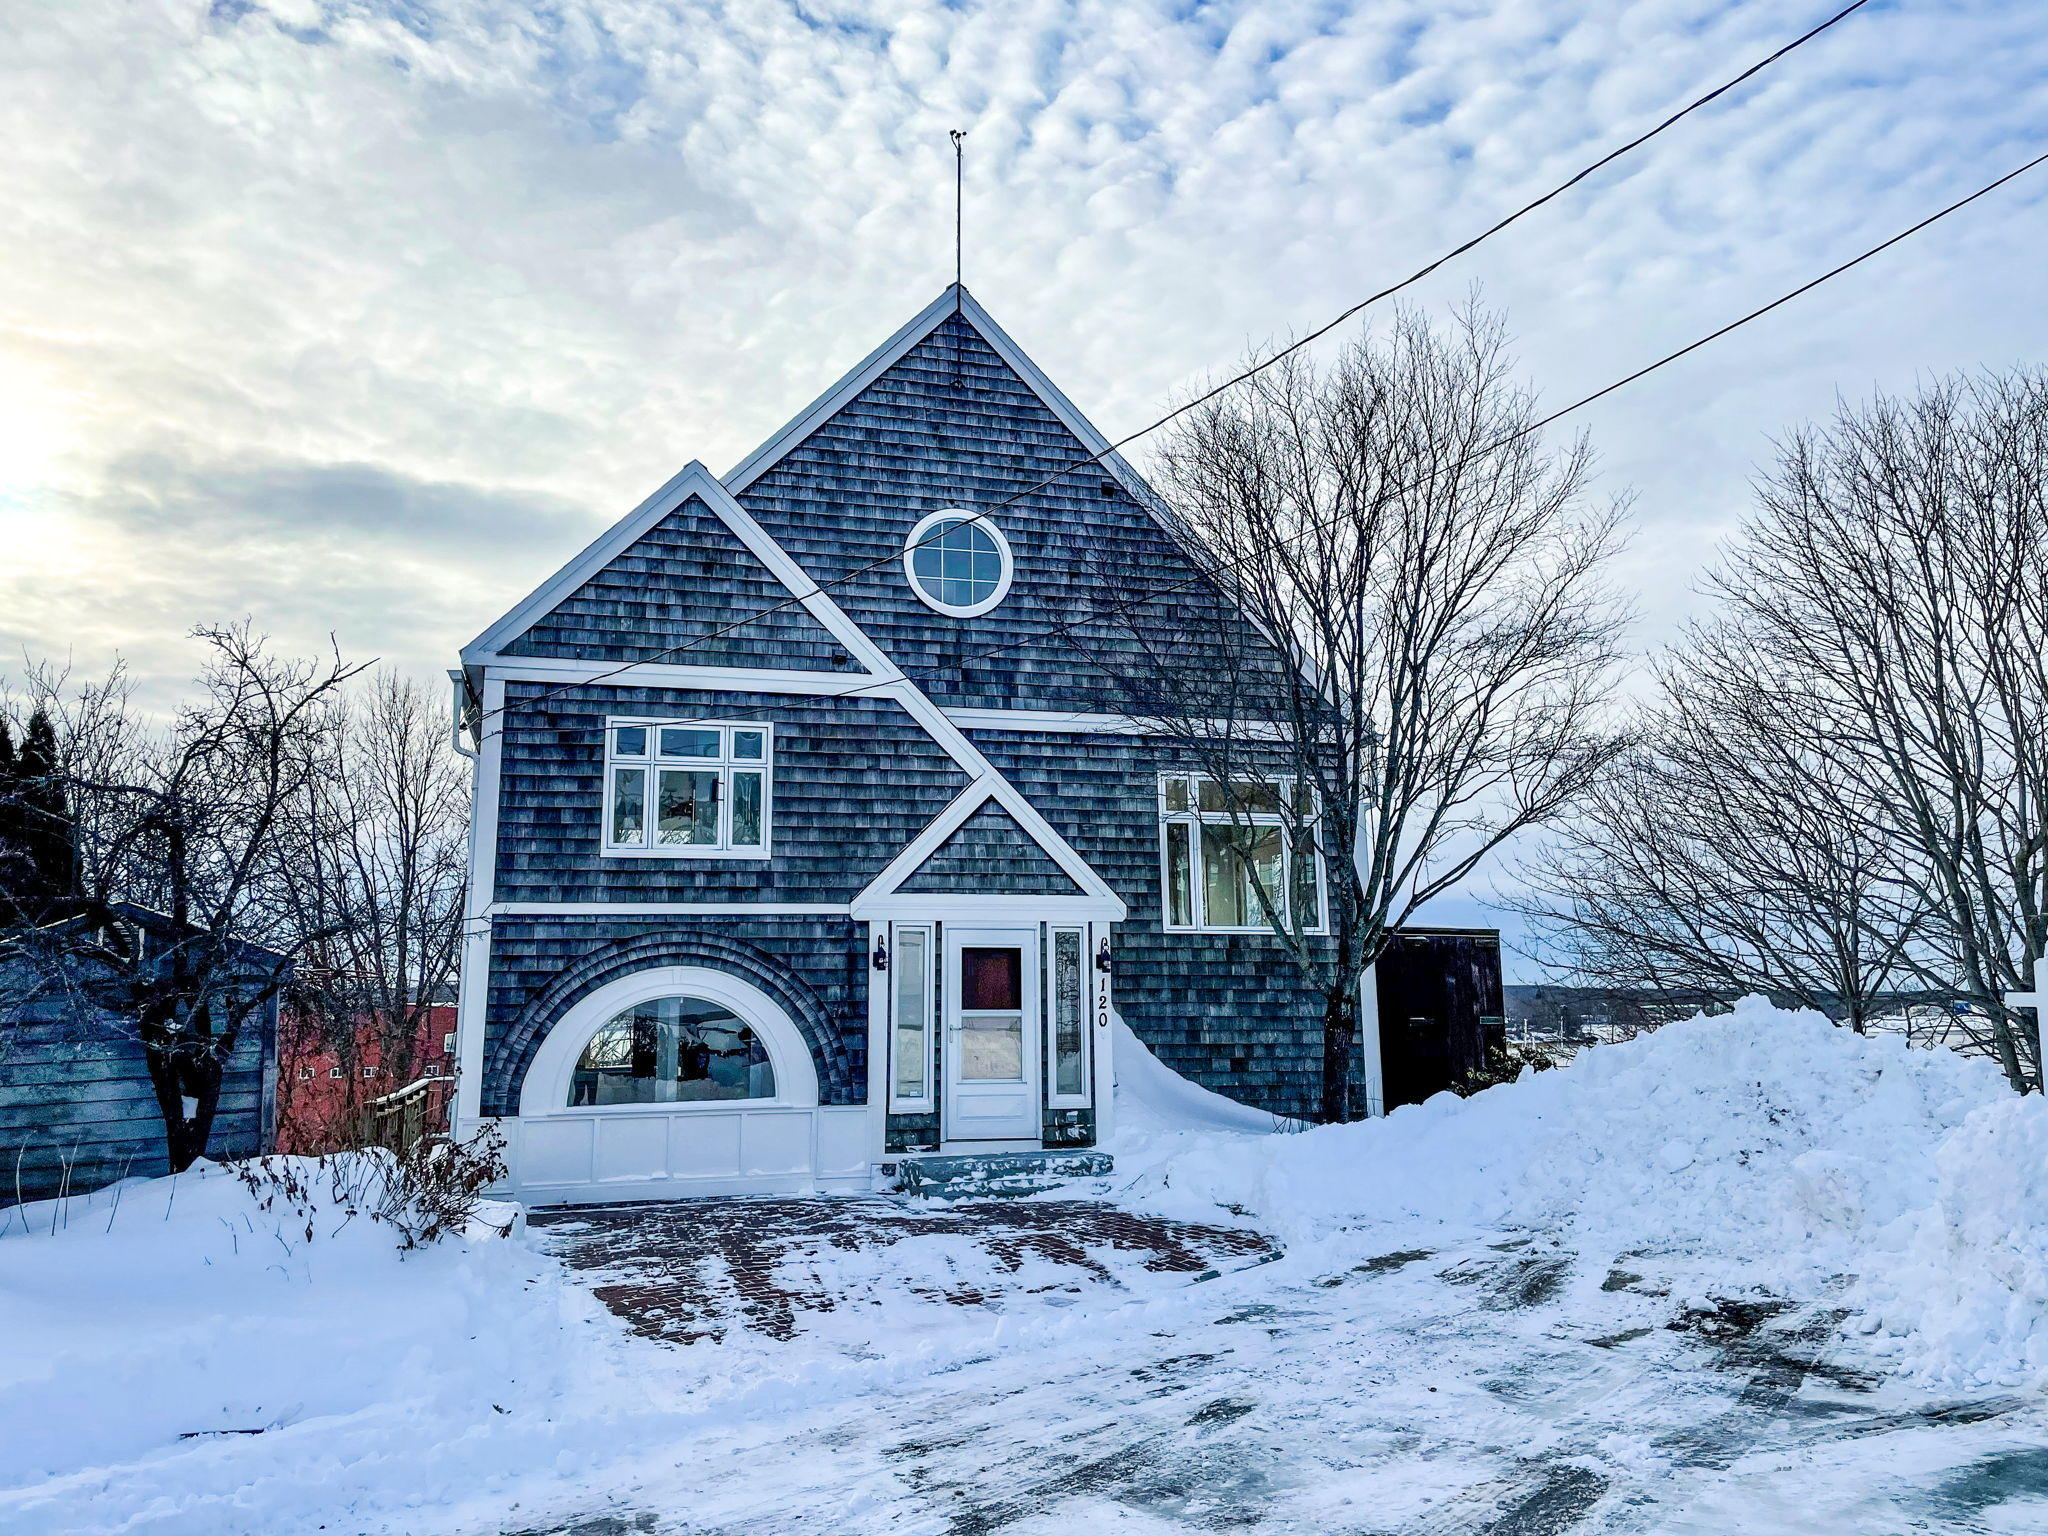 Main image for MLS listing 1473734